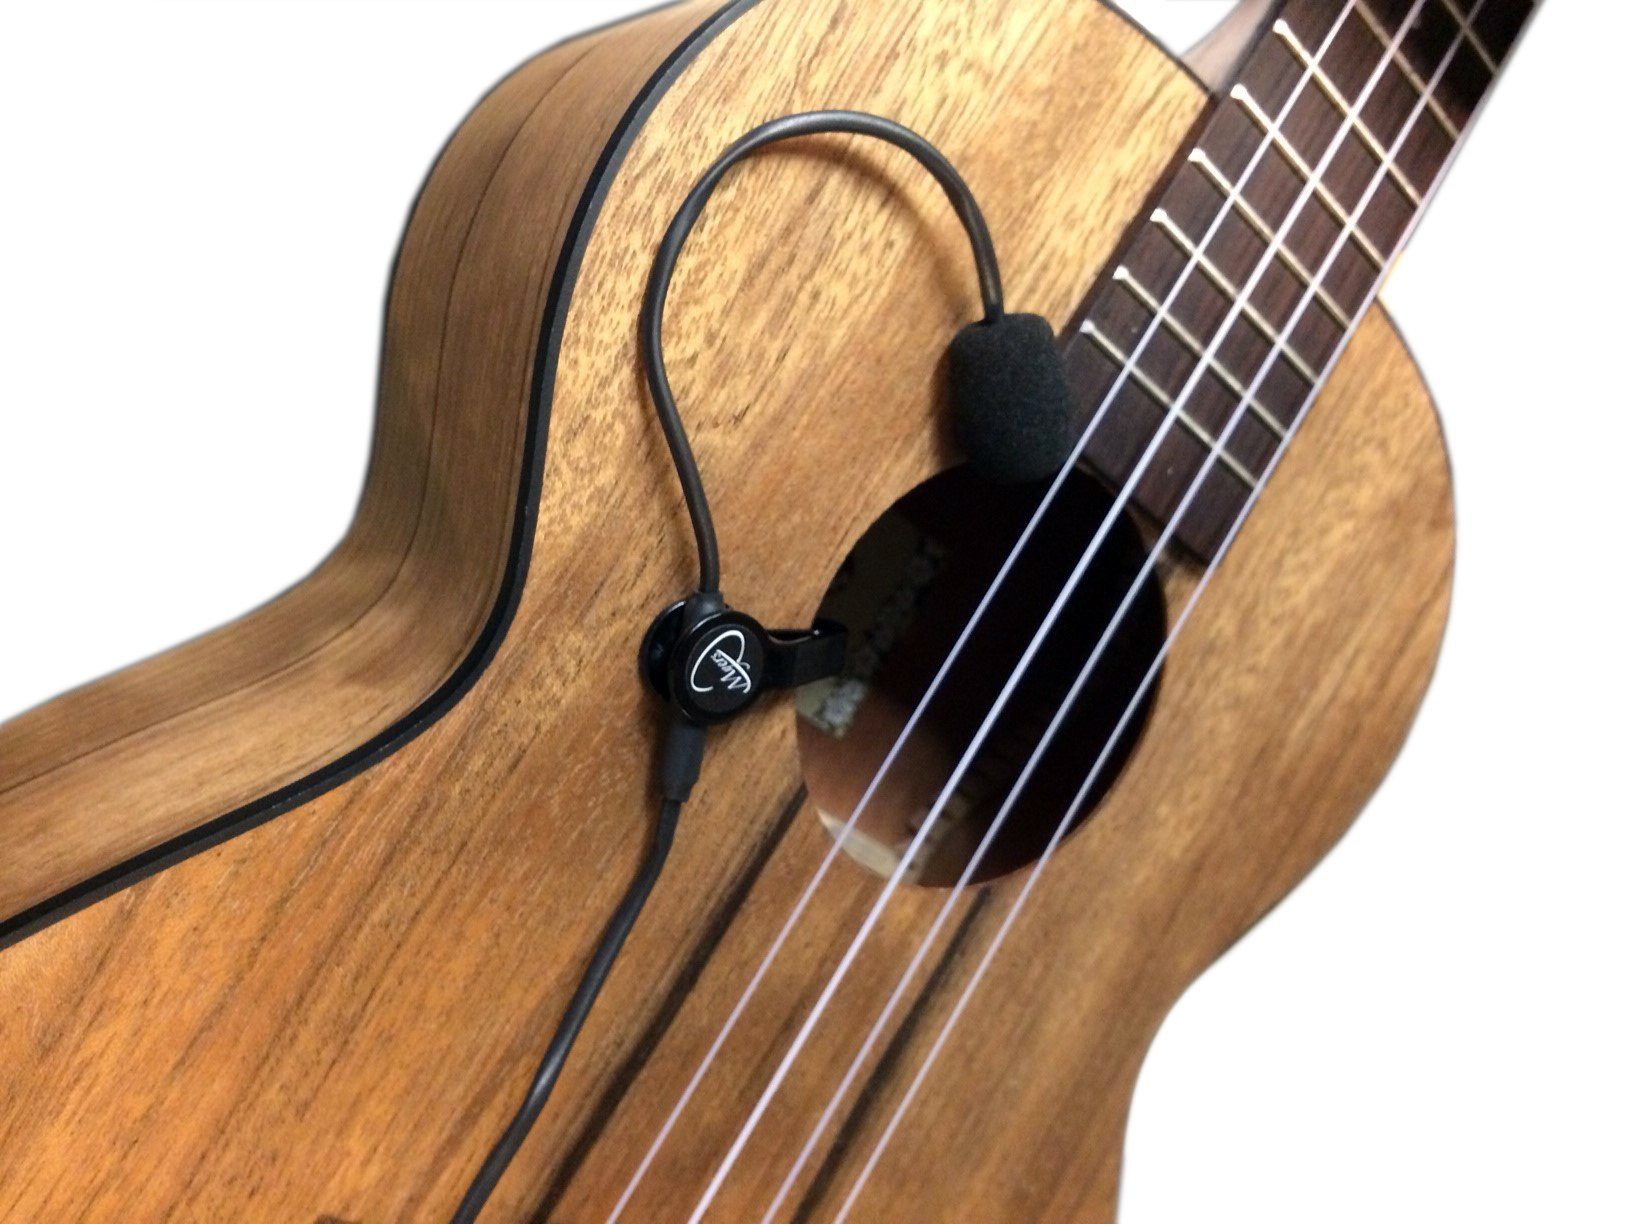 ''THE FEATHER'' UKULELE PICKUP with FLEXIBLE MICRO-GOOSE NECK by Myers Pickups ~ See it in ACTION! Copy and paste: myerspickups.com